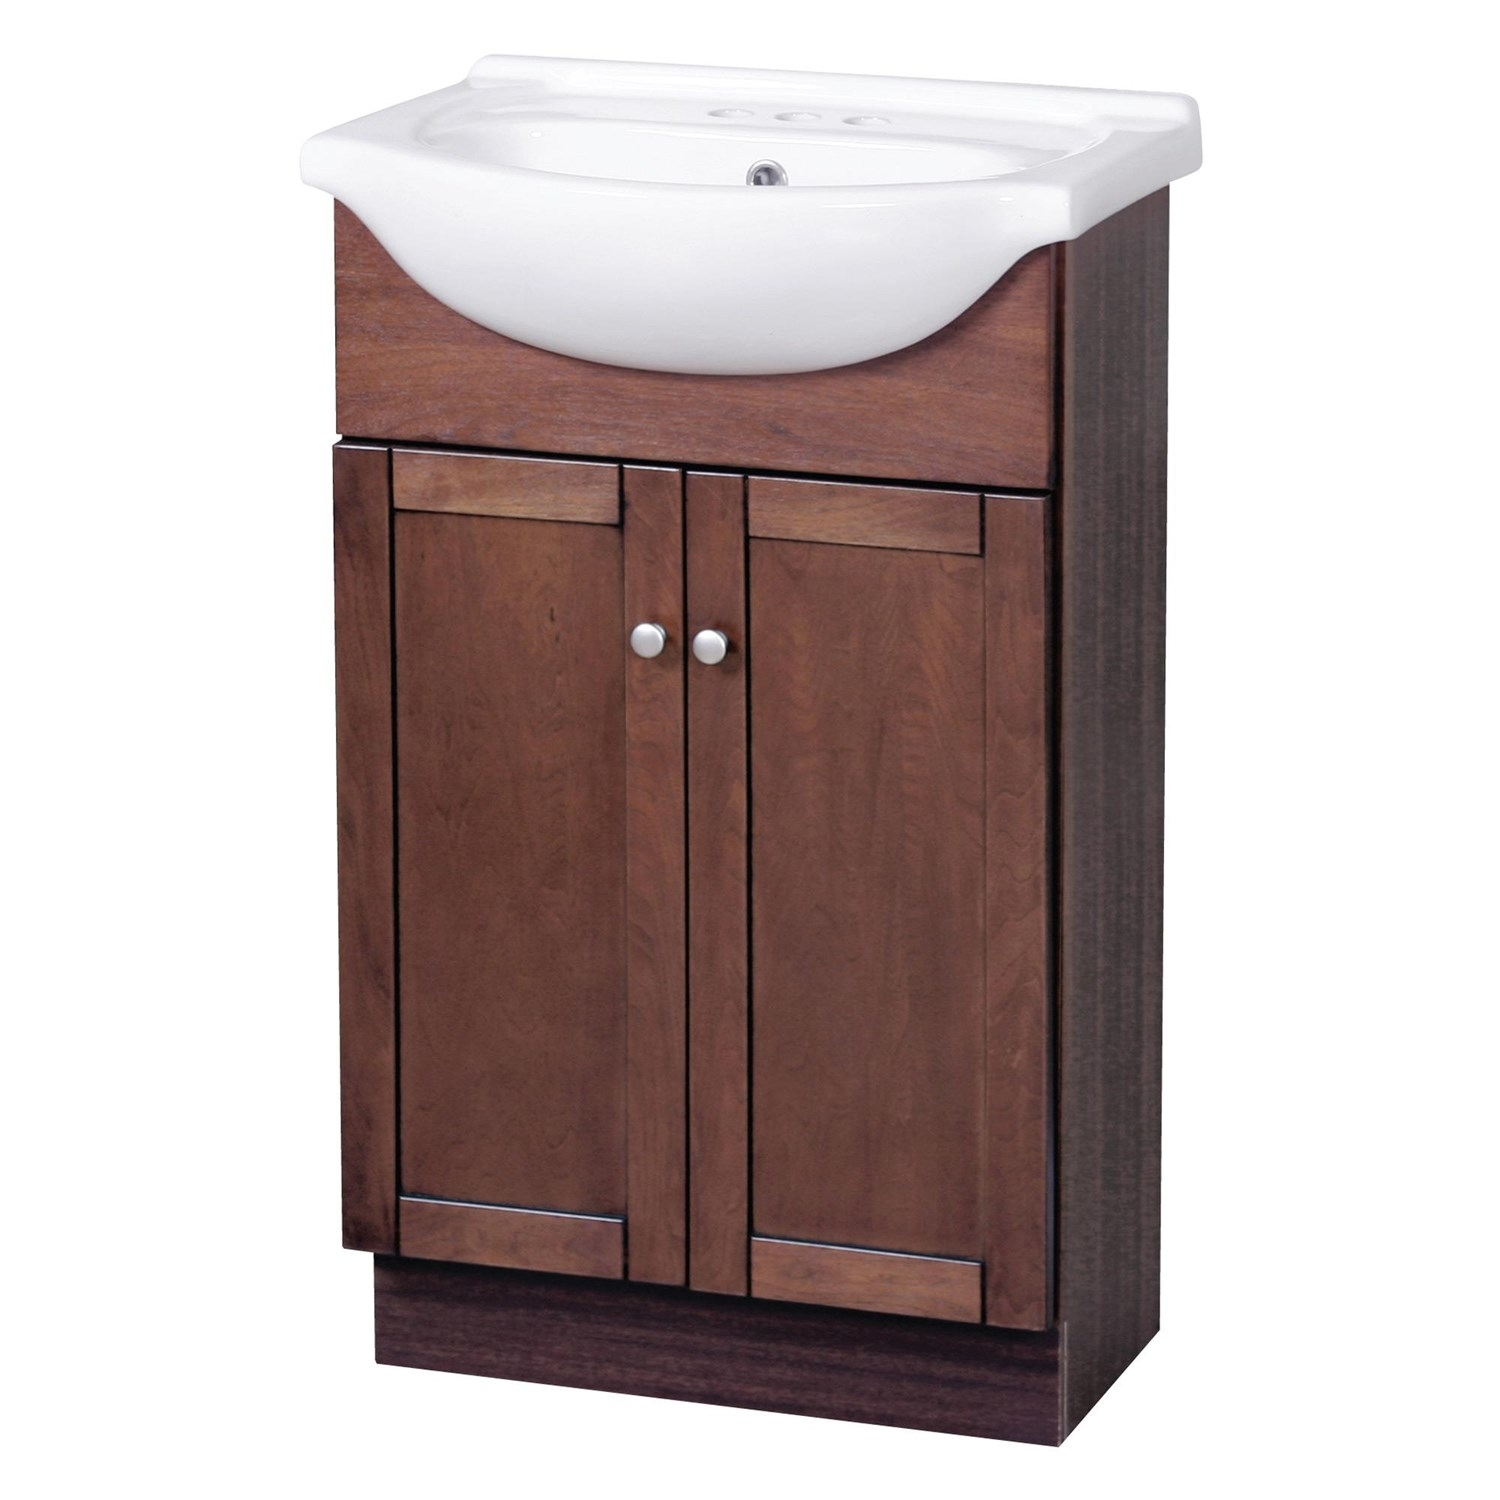 22 Inch Bathroom Vanity Combo